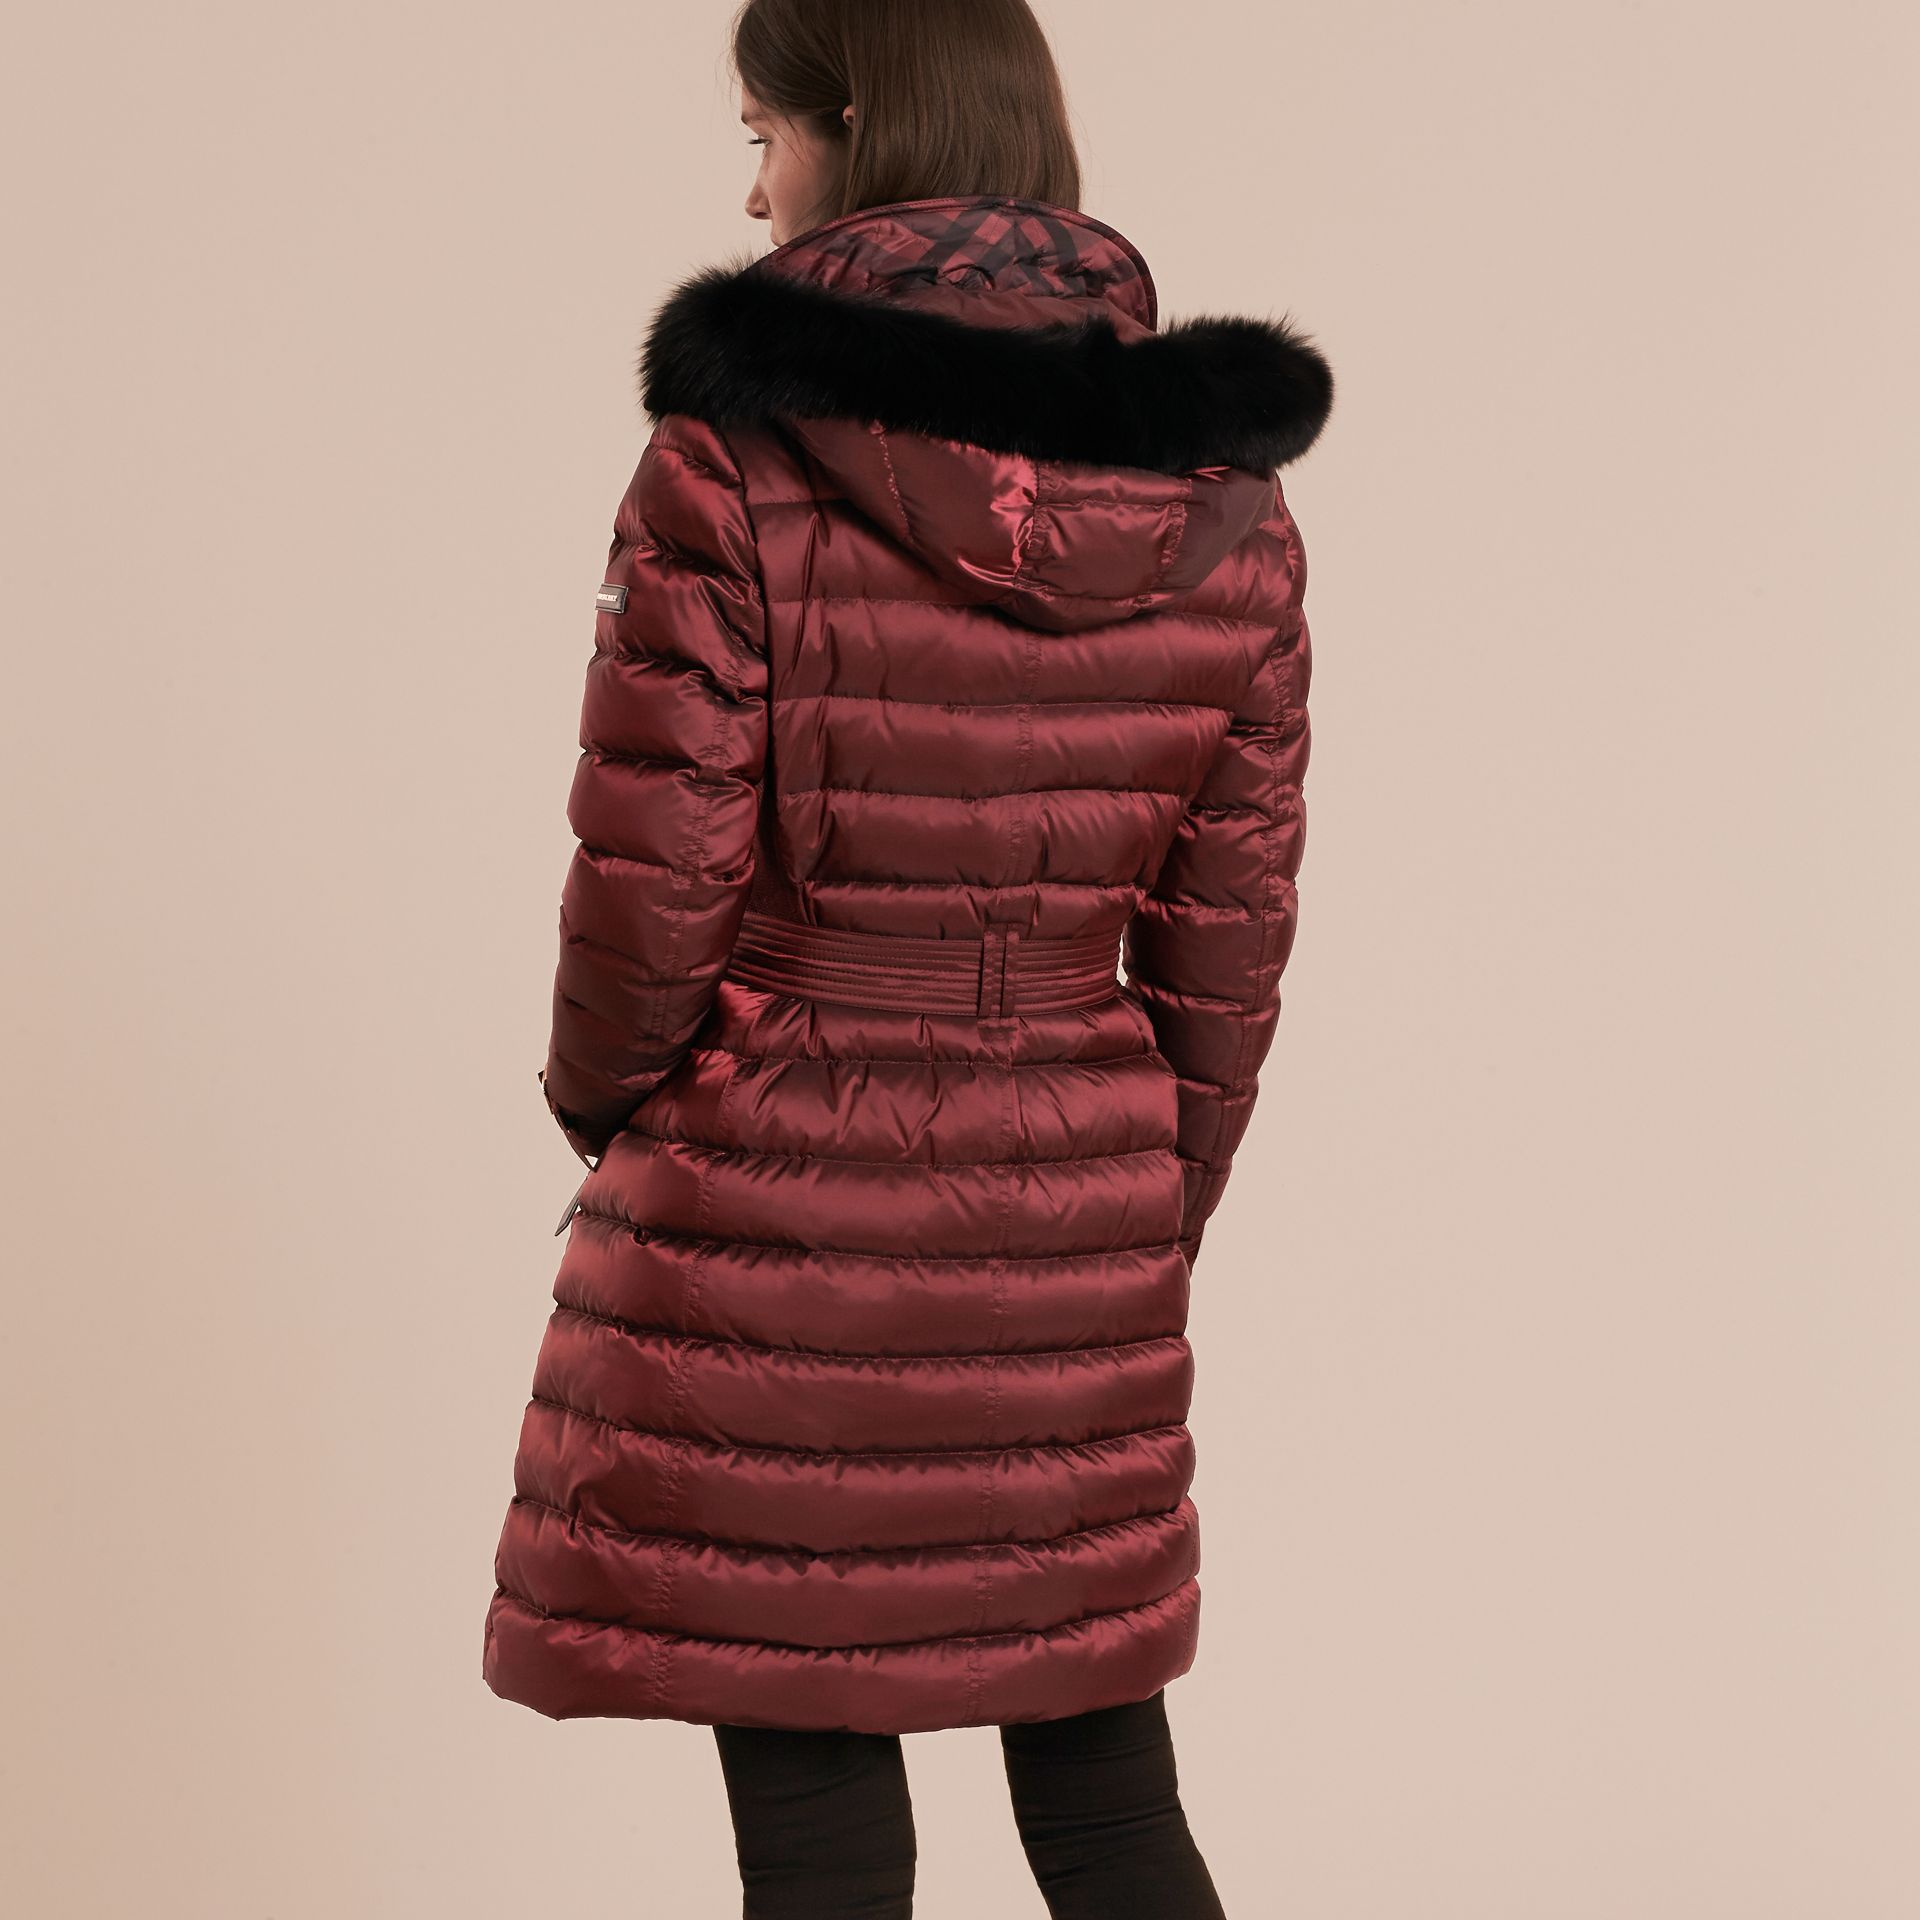 Down-filled Coat with Fox Fur Trim Hood in Burgundy - Women | Burberry - gallery image 3